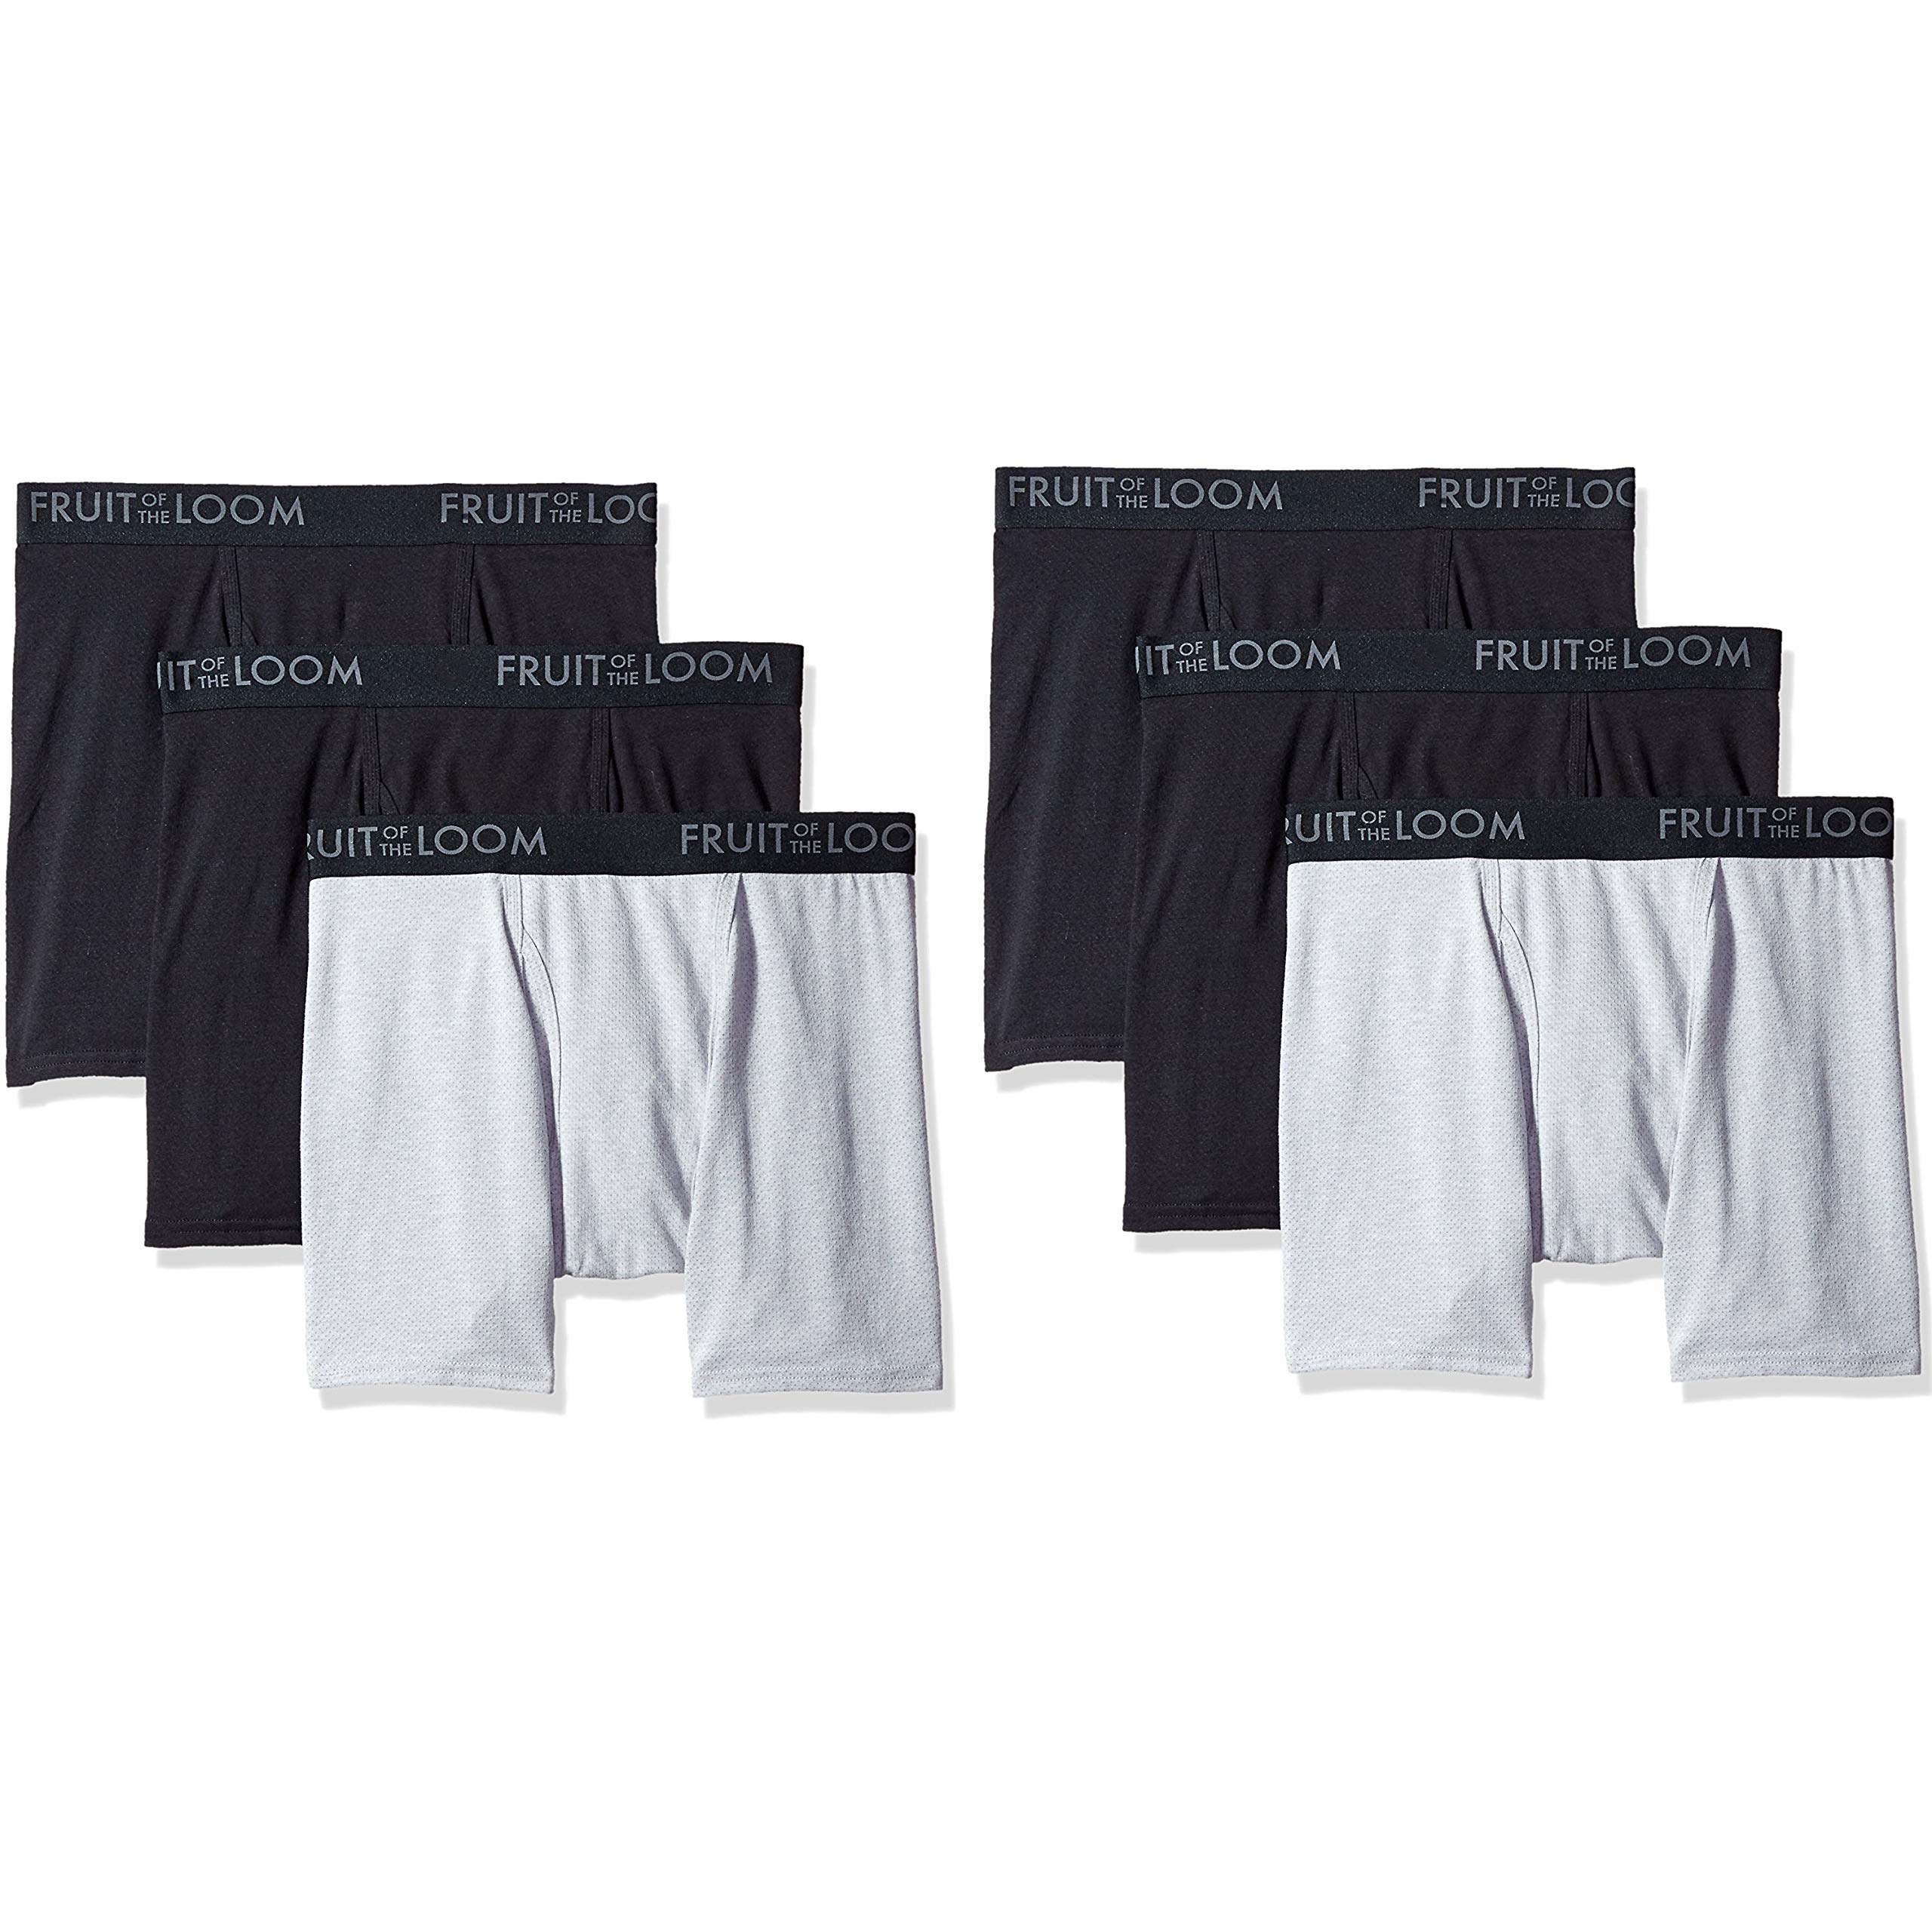 Fruit of the Loom Men's Breathable Boxer Brief Multipack, Black/Gray, XX-Large